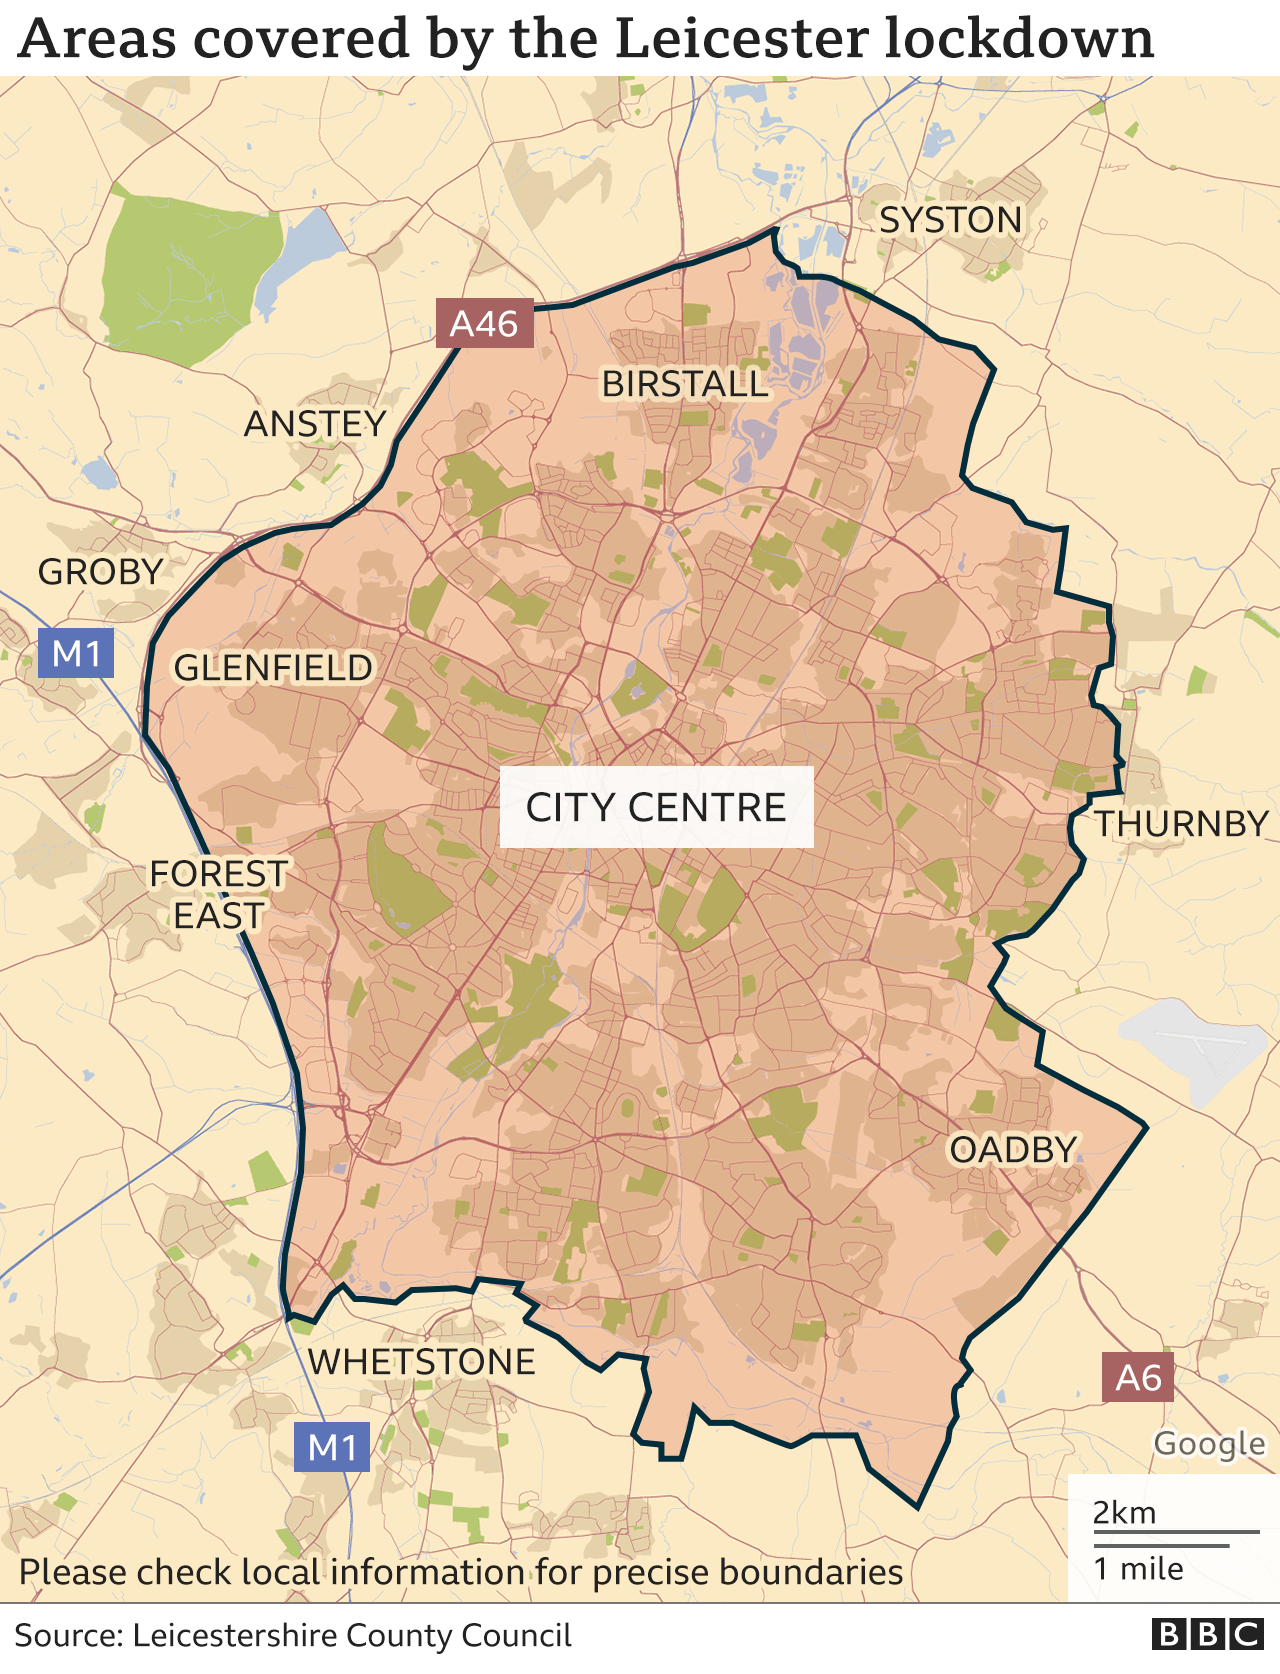 Map showing the boundaries of the Leicester lockdown.